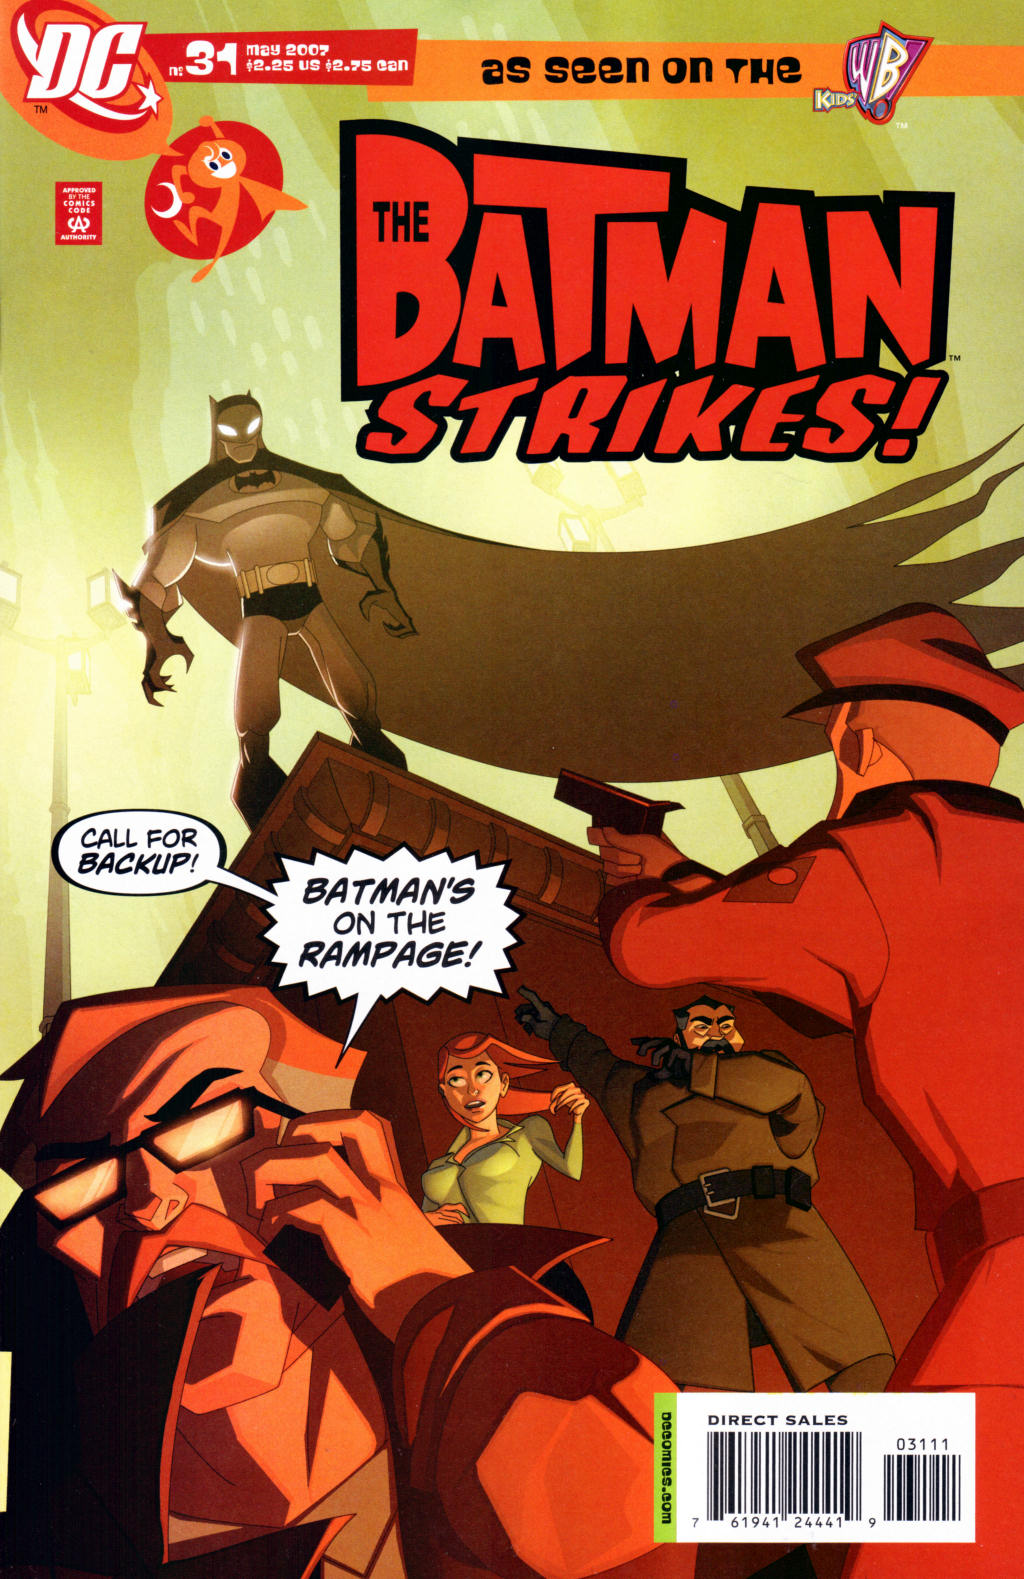 The Batman Strikes! Vol 1 31